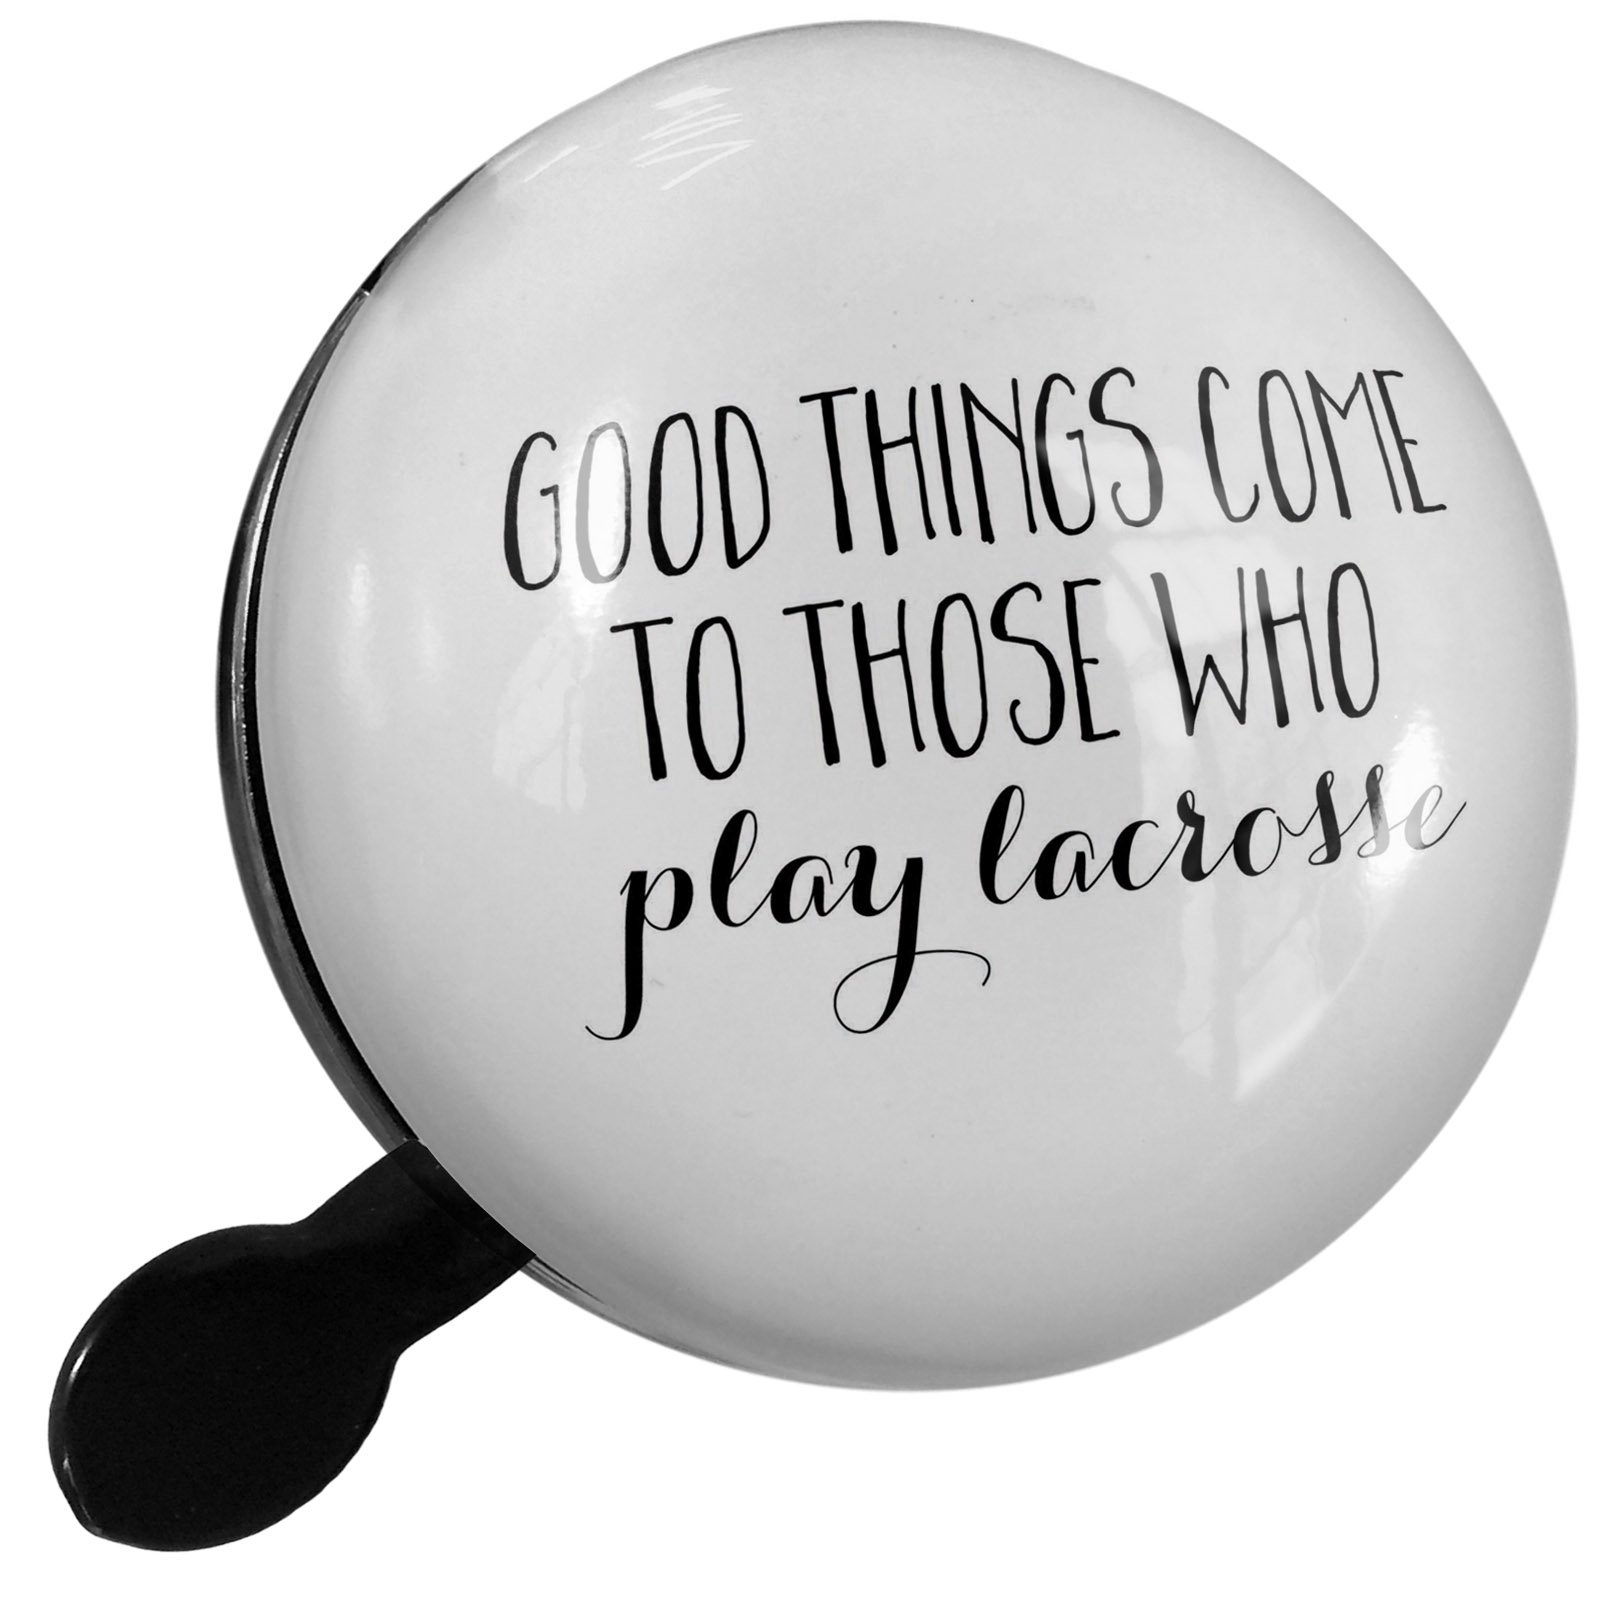 Small Bike Bell Good Things Come to Those Who Play Lacrosse Funny Saying - NEONBLOND